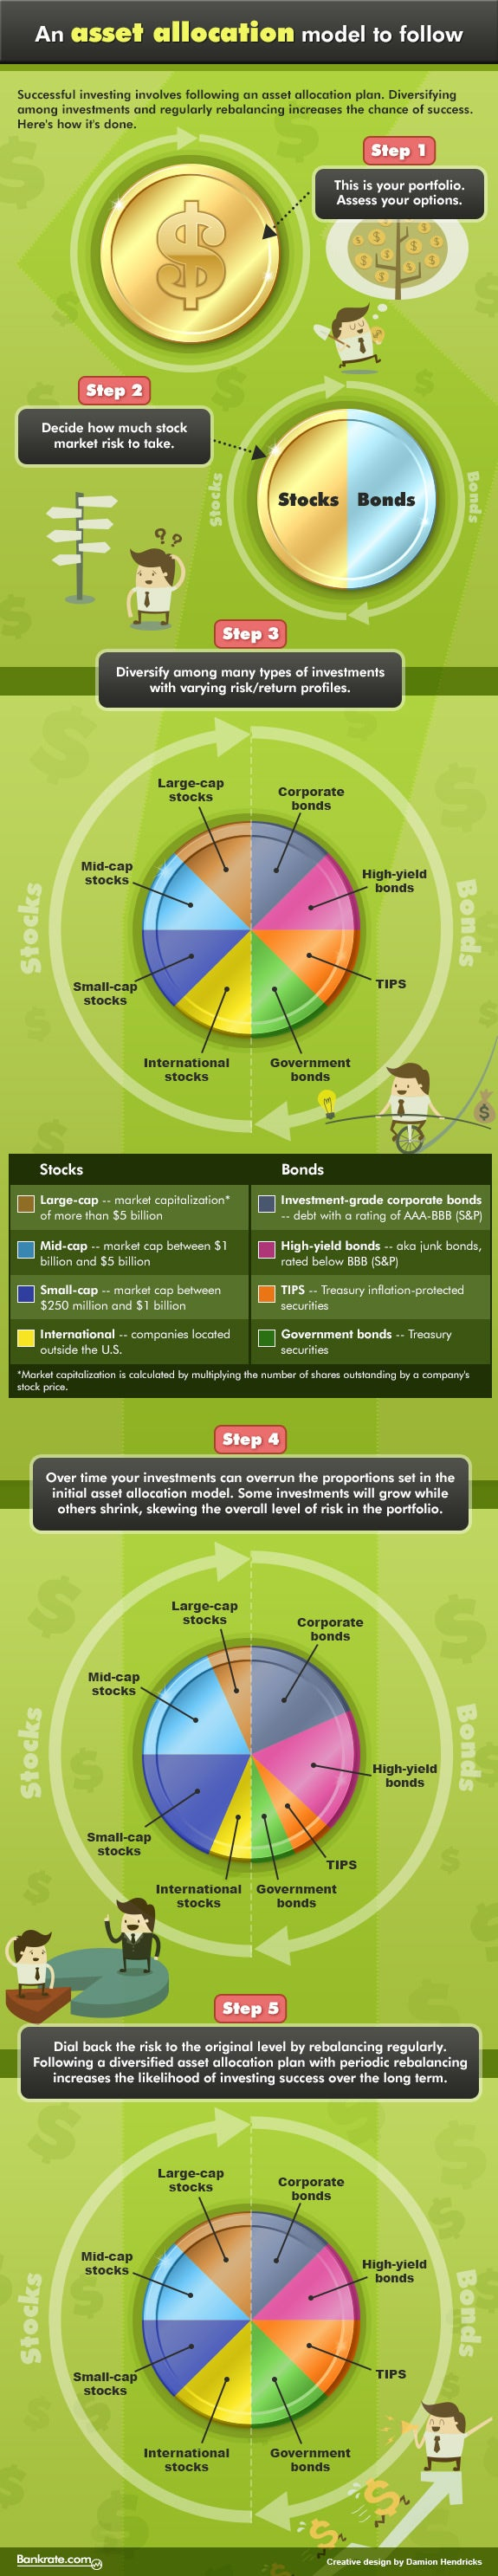 Infographic: An asset allocation model to follow